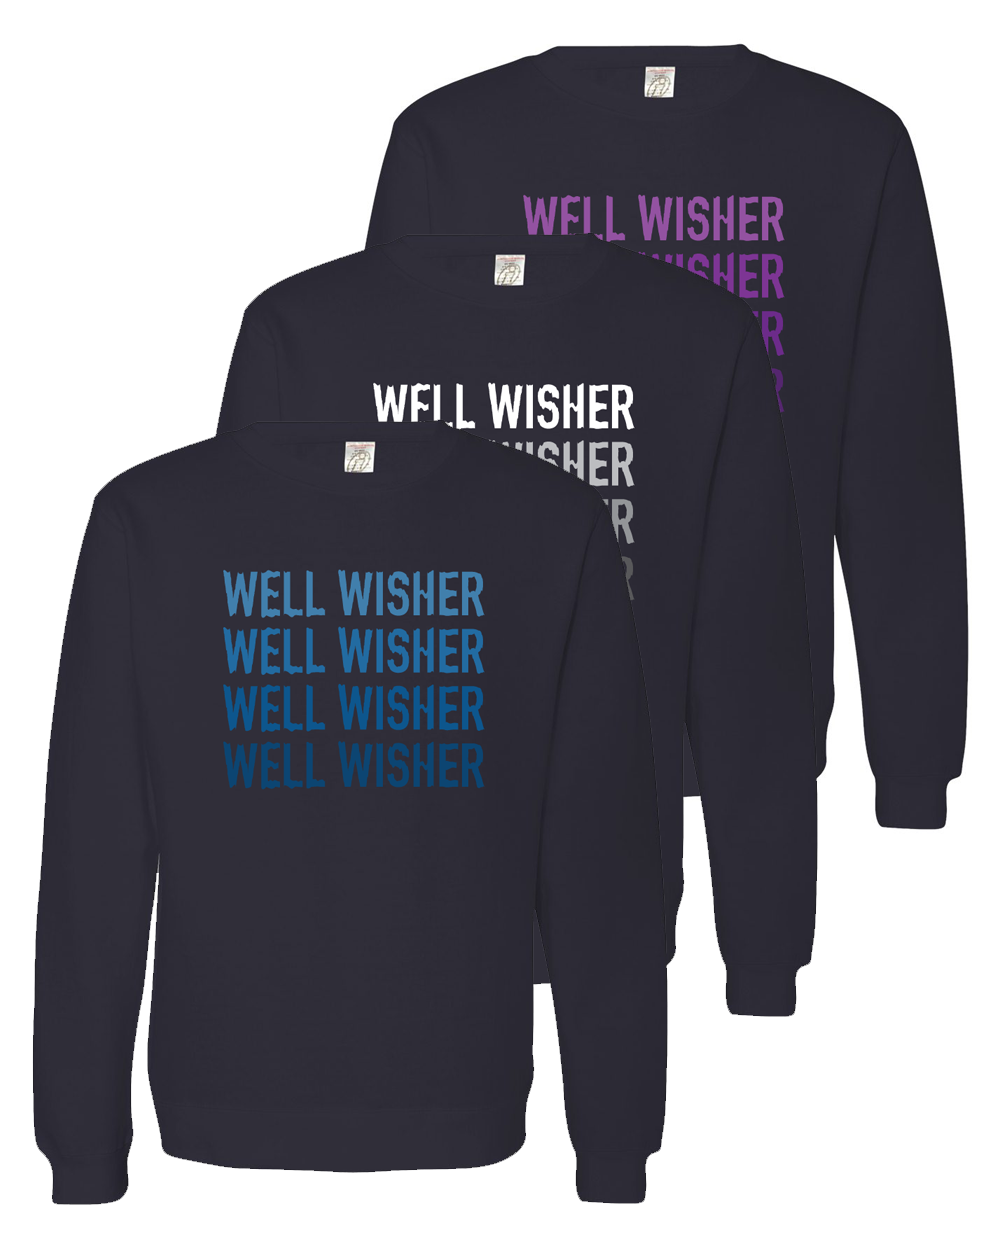 Well Wisher : Melt Sweatshirt